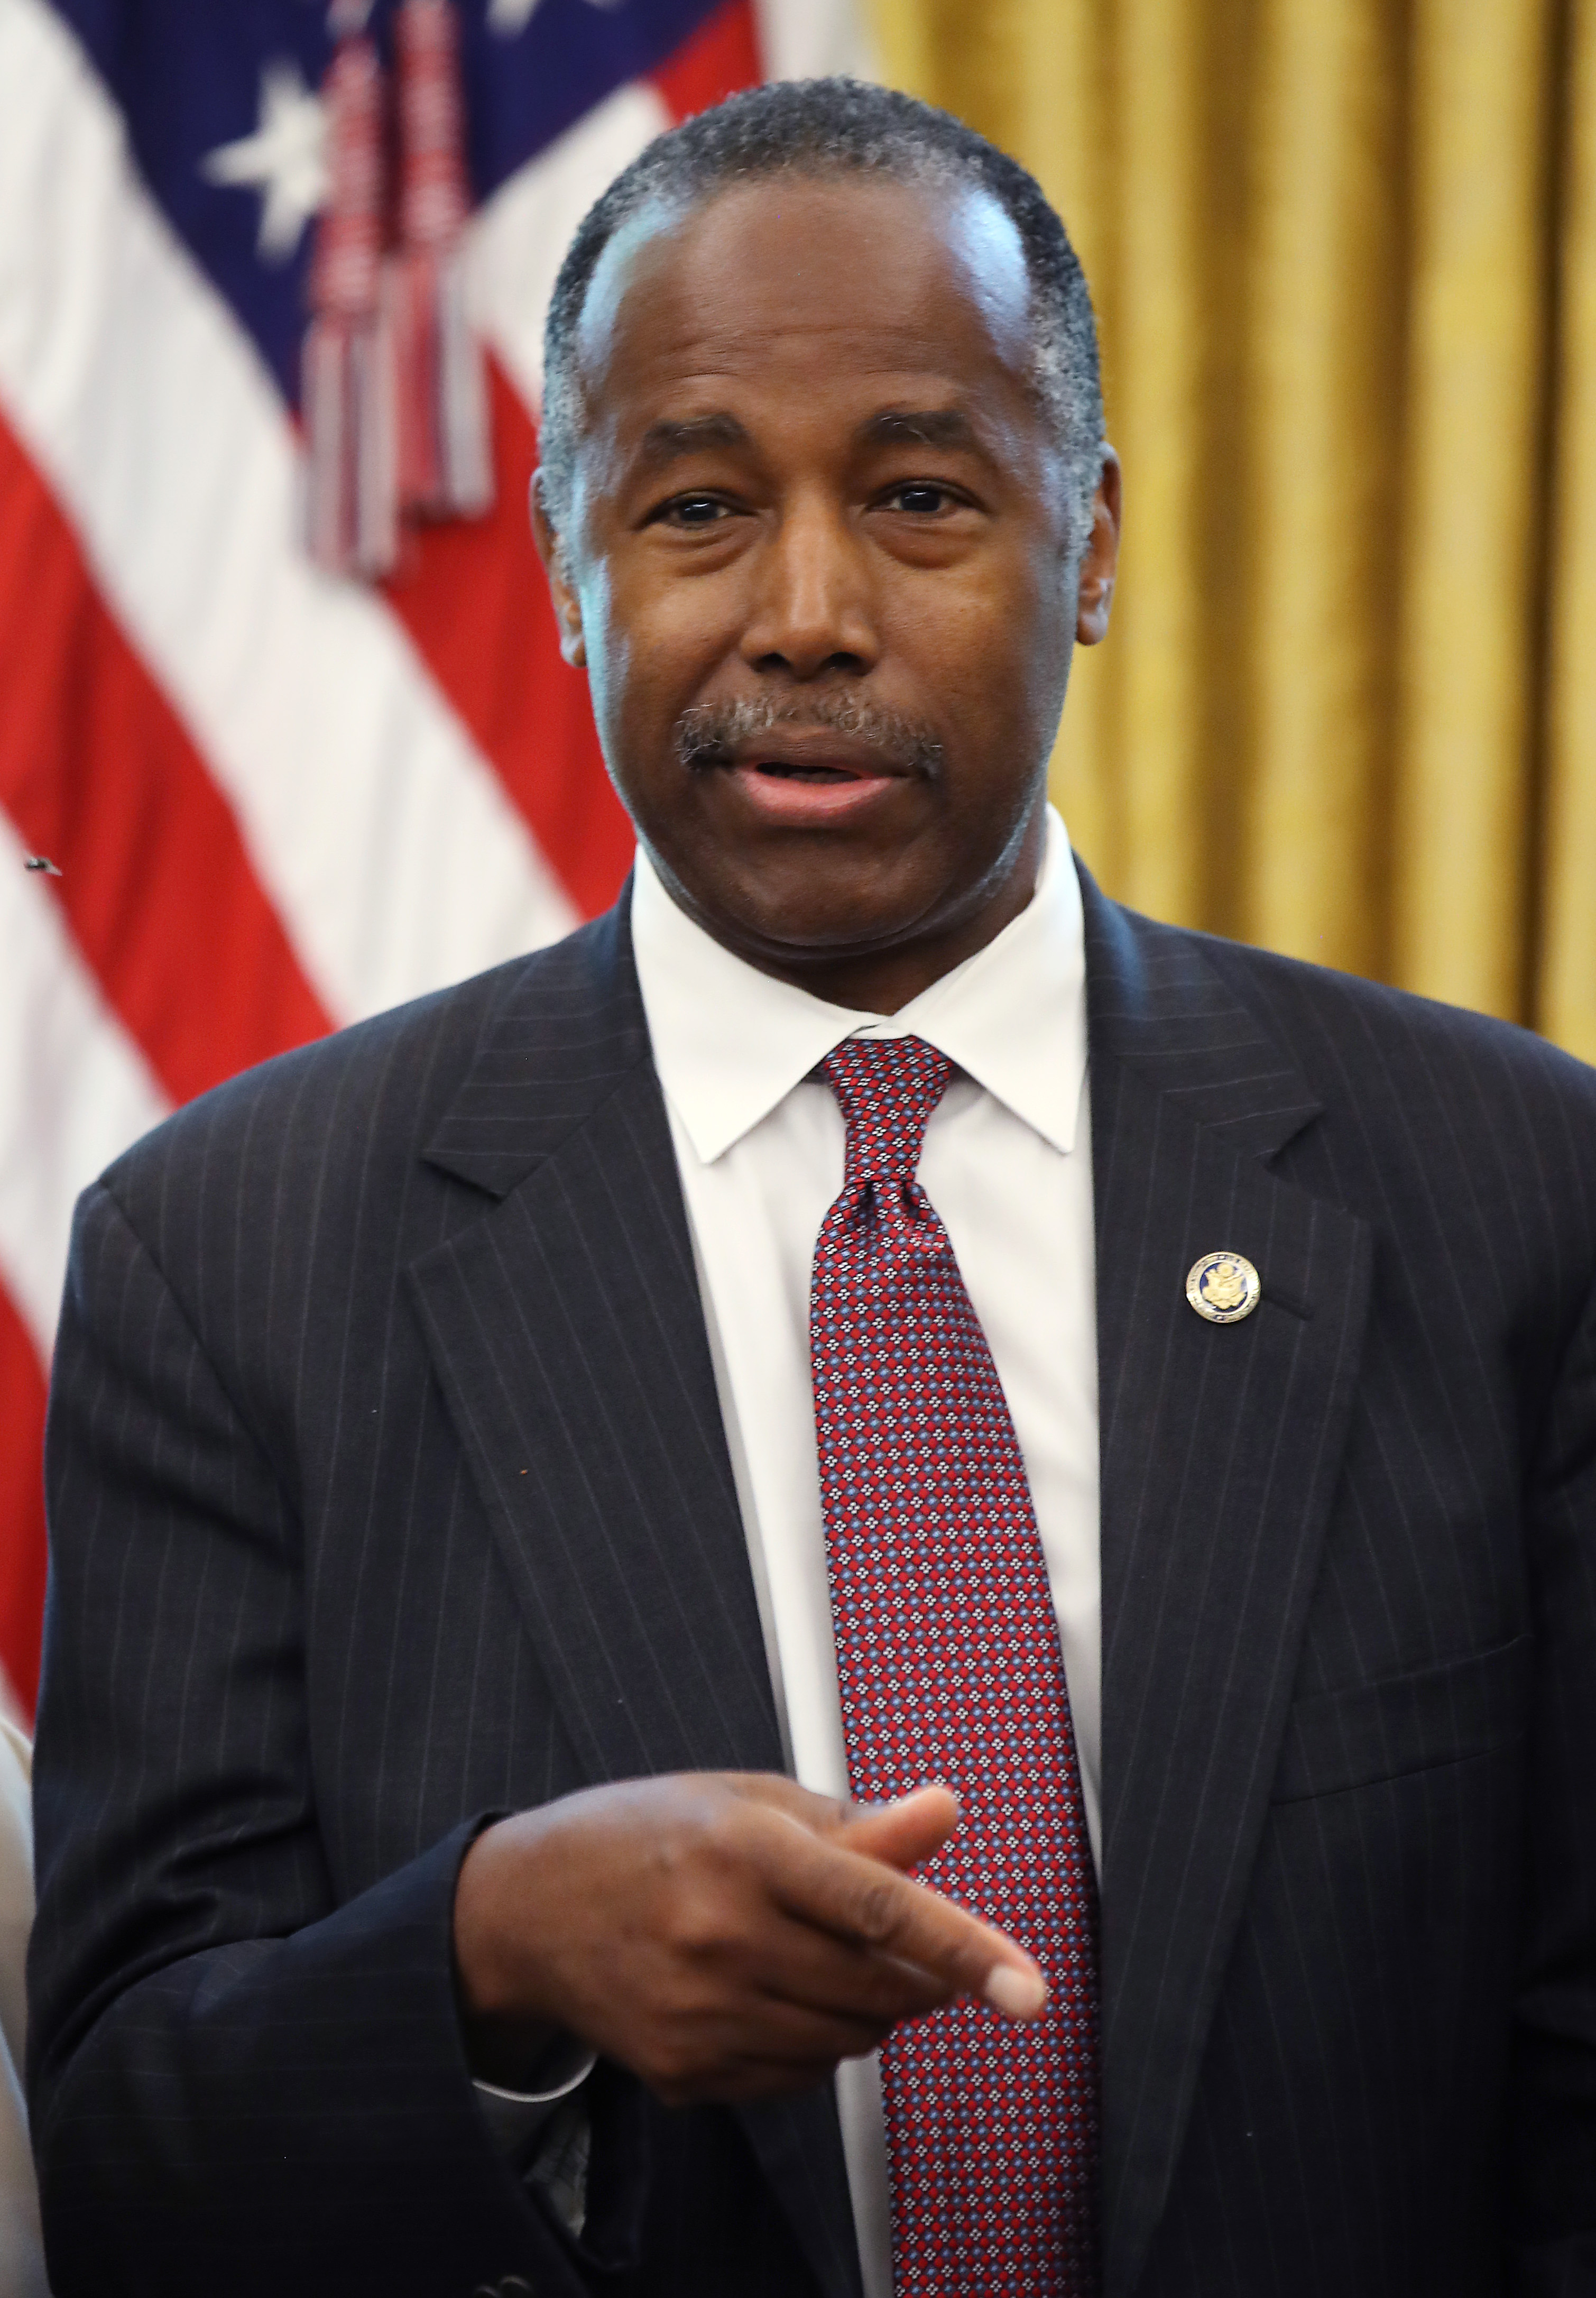 WASHINGTON, DC - JUNE 25: Housing and Urban Development Secretary Ben Carson speaks after U.S. President Donald Trump signed an executive order establishing a White House Council on eliminating regulatory barriers to affordable housing, in the Oval Office at the White House on June 25, 2019 in Washington, DC. The council, which will be made up of members of eight federal agencies, will reportedly be tasked with easing local barriers to the private sector of creating housing, according to published reports. (Photo by Mark Wilson/Getty Images)